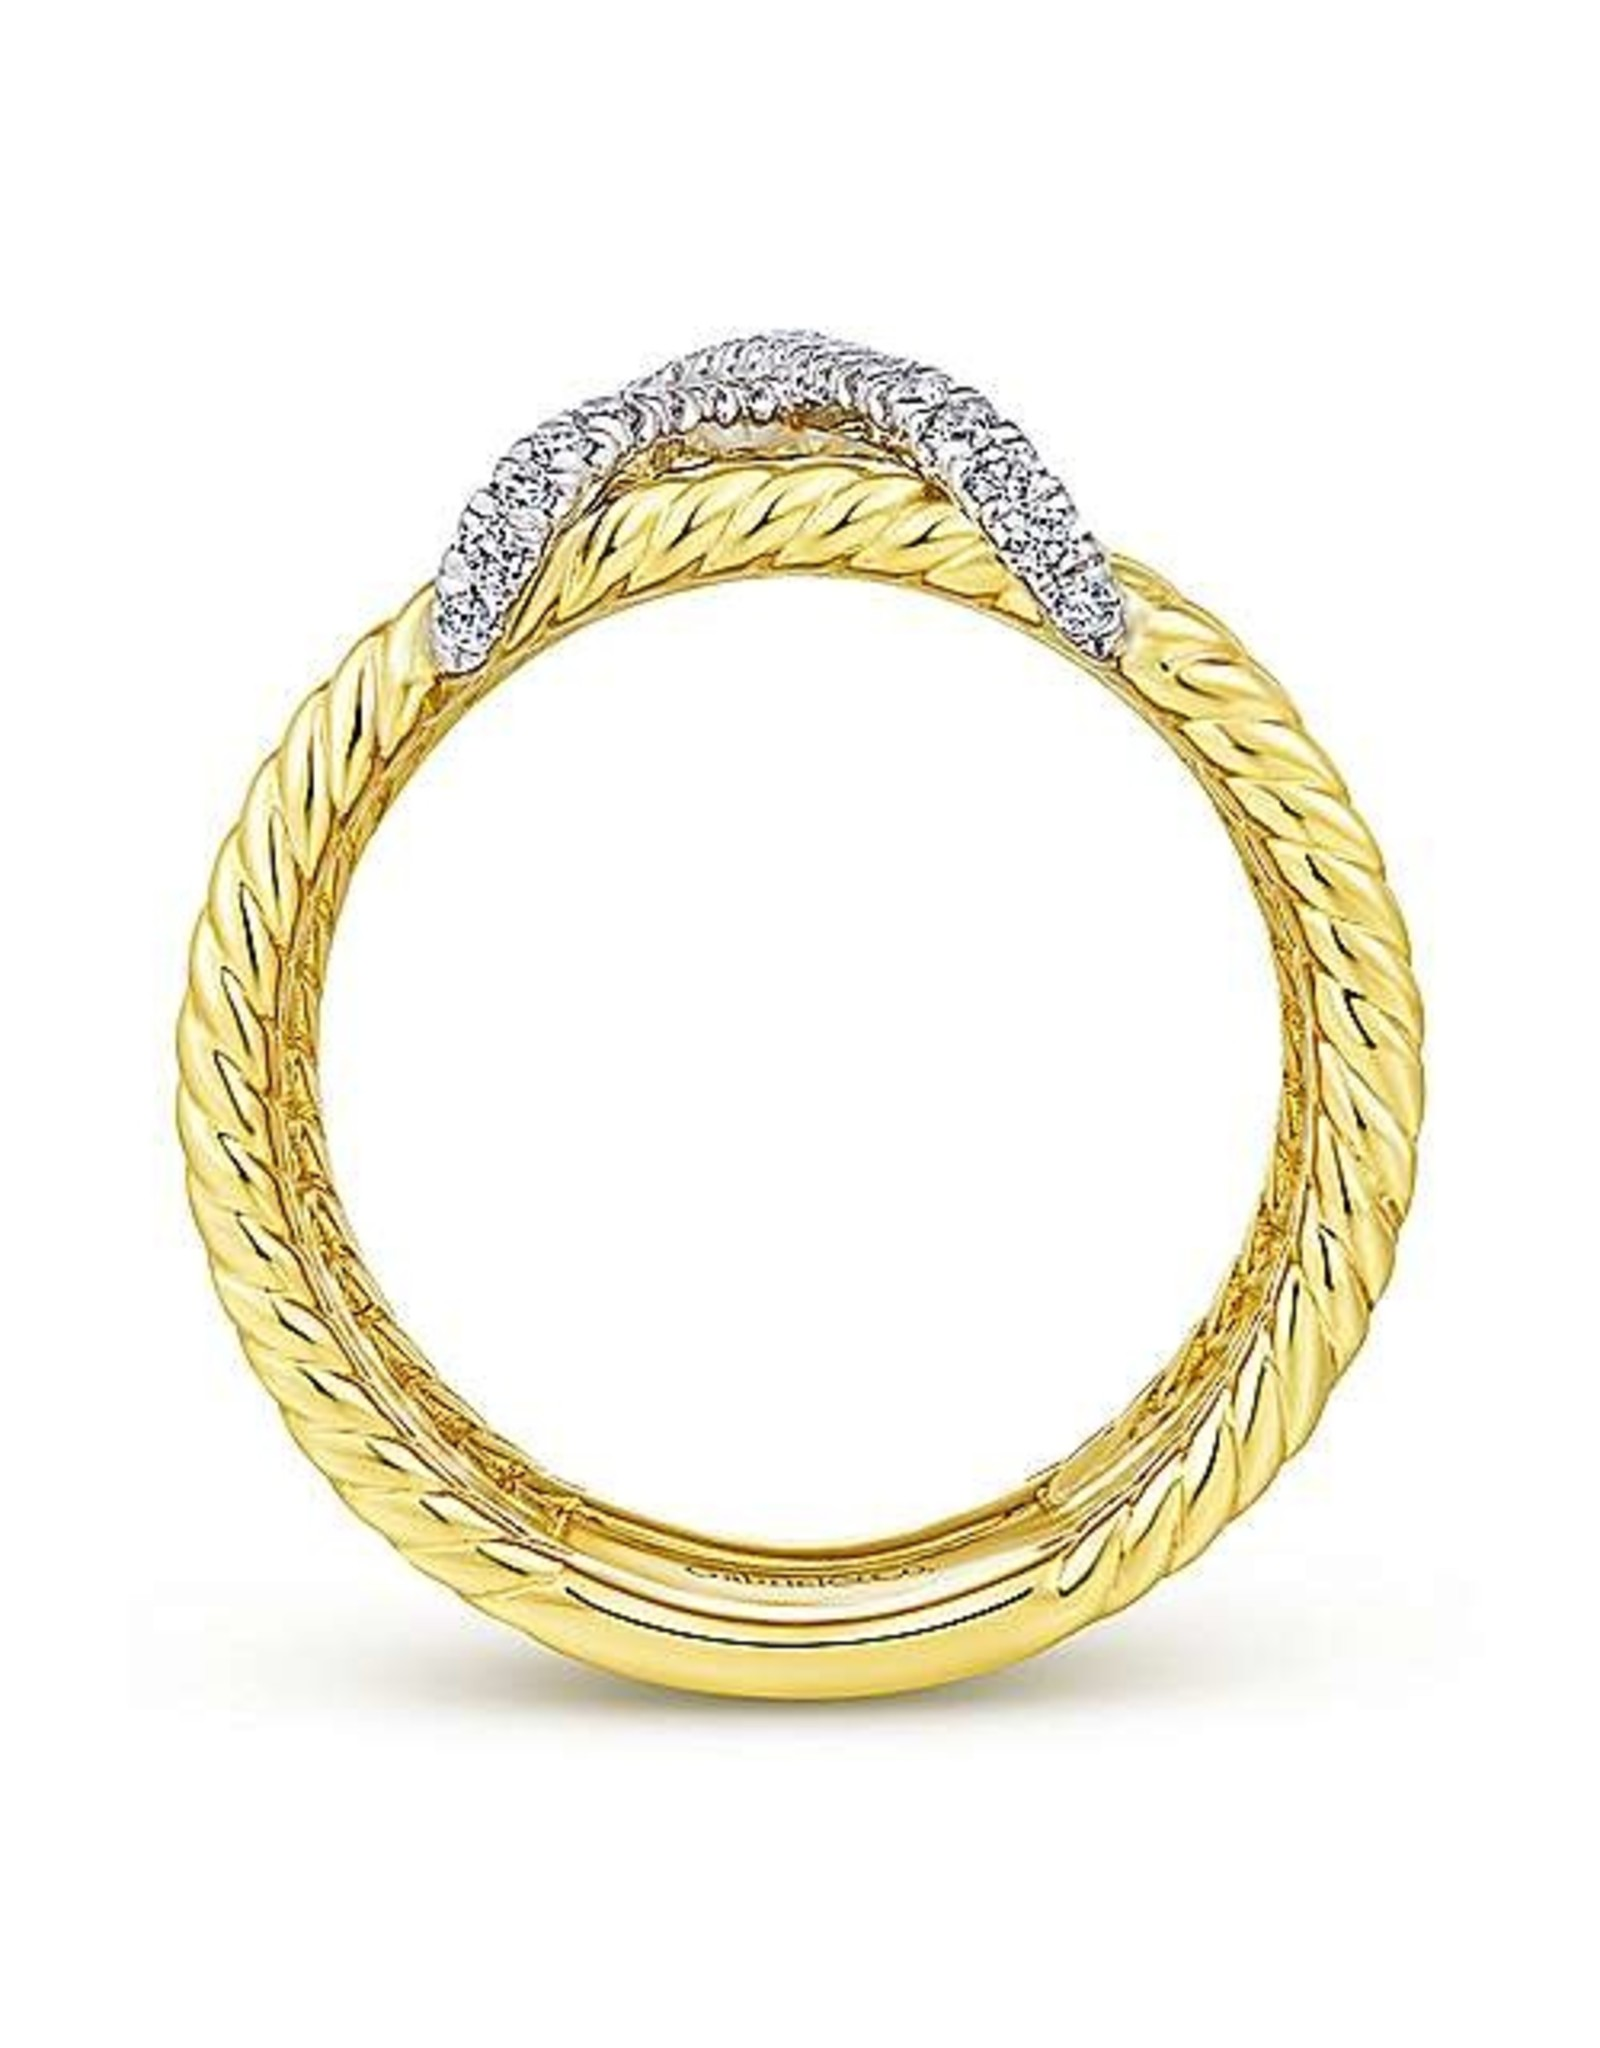 14K Yellow Gold Diamond X-Marks the Spot Twisted Rope Ring, D: 0.25ct